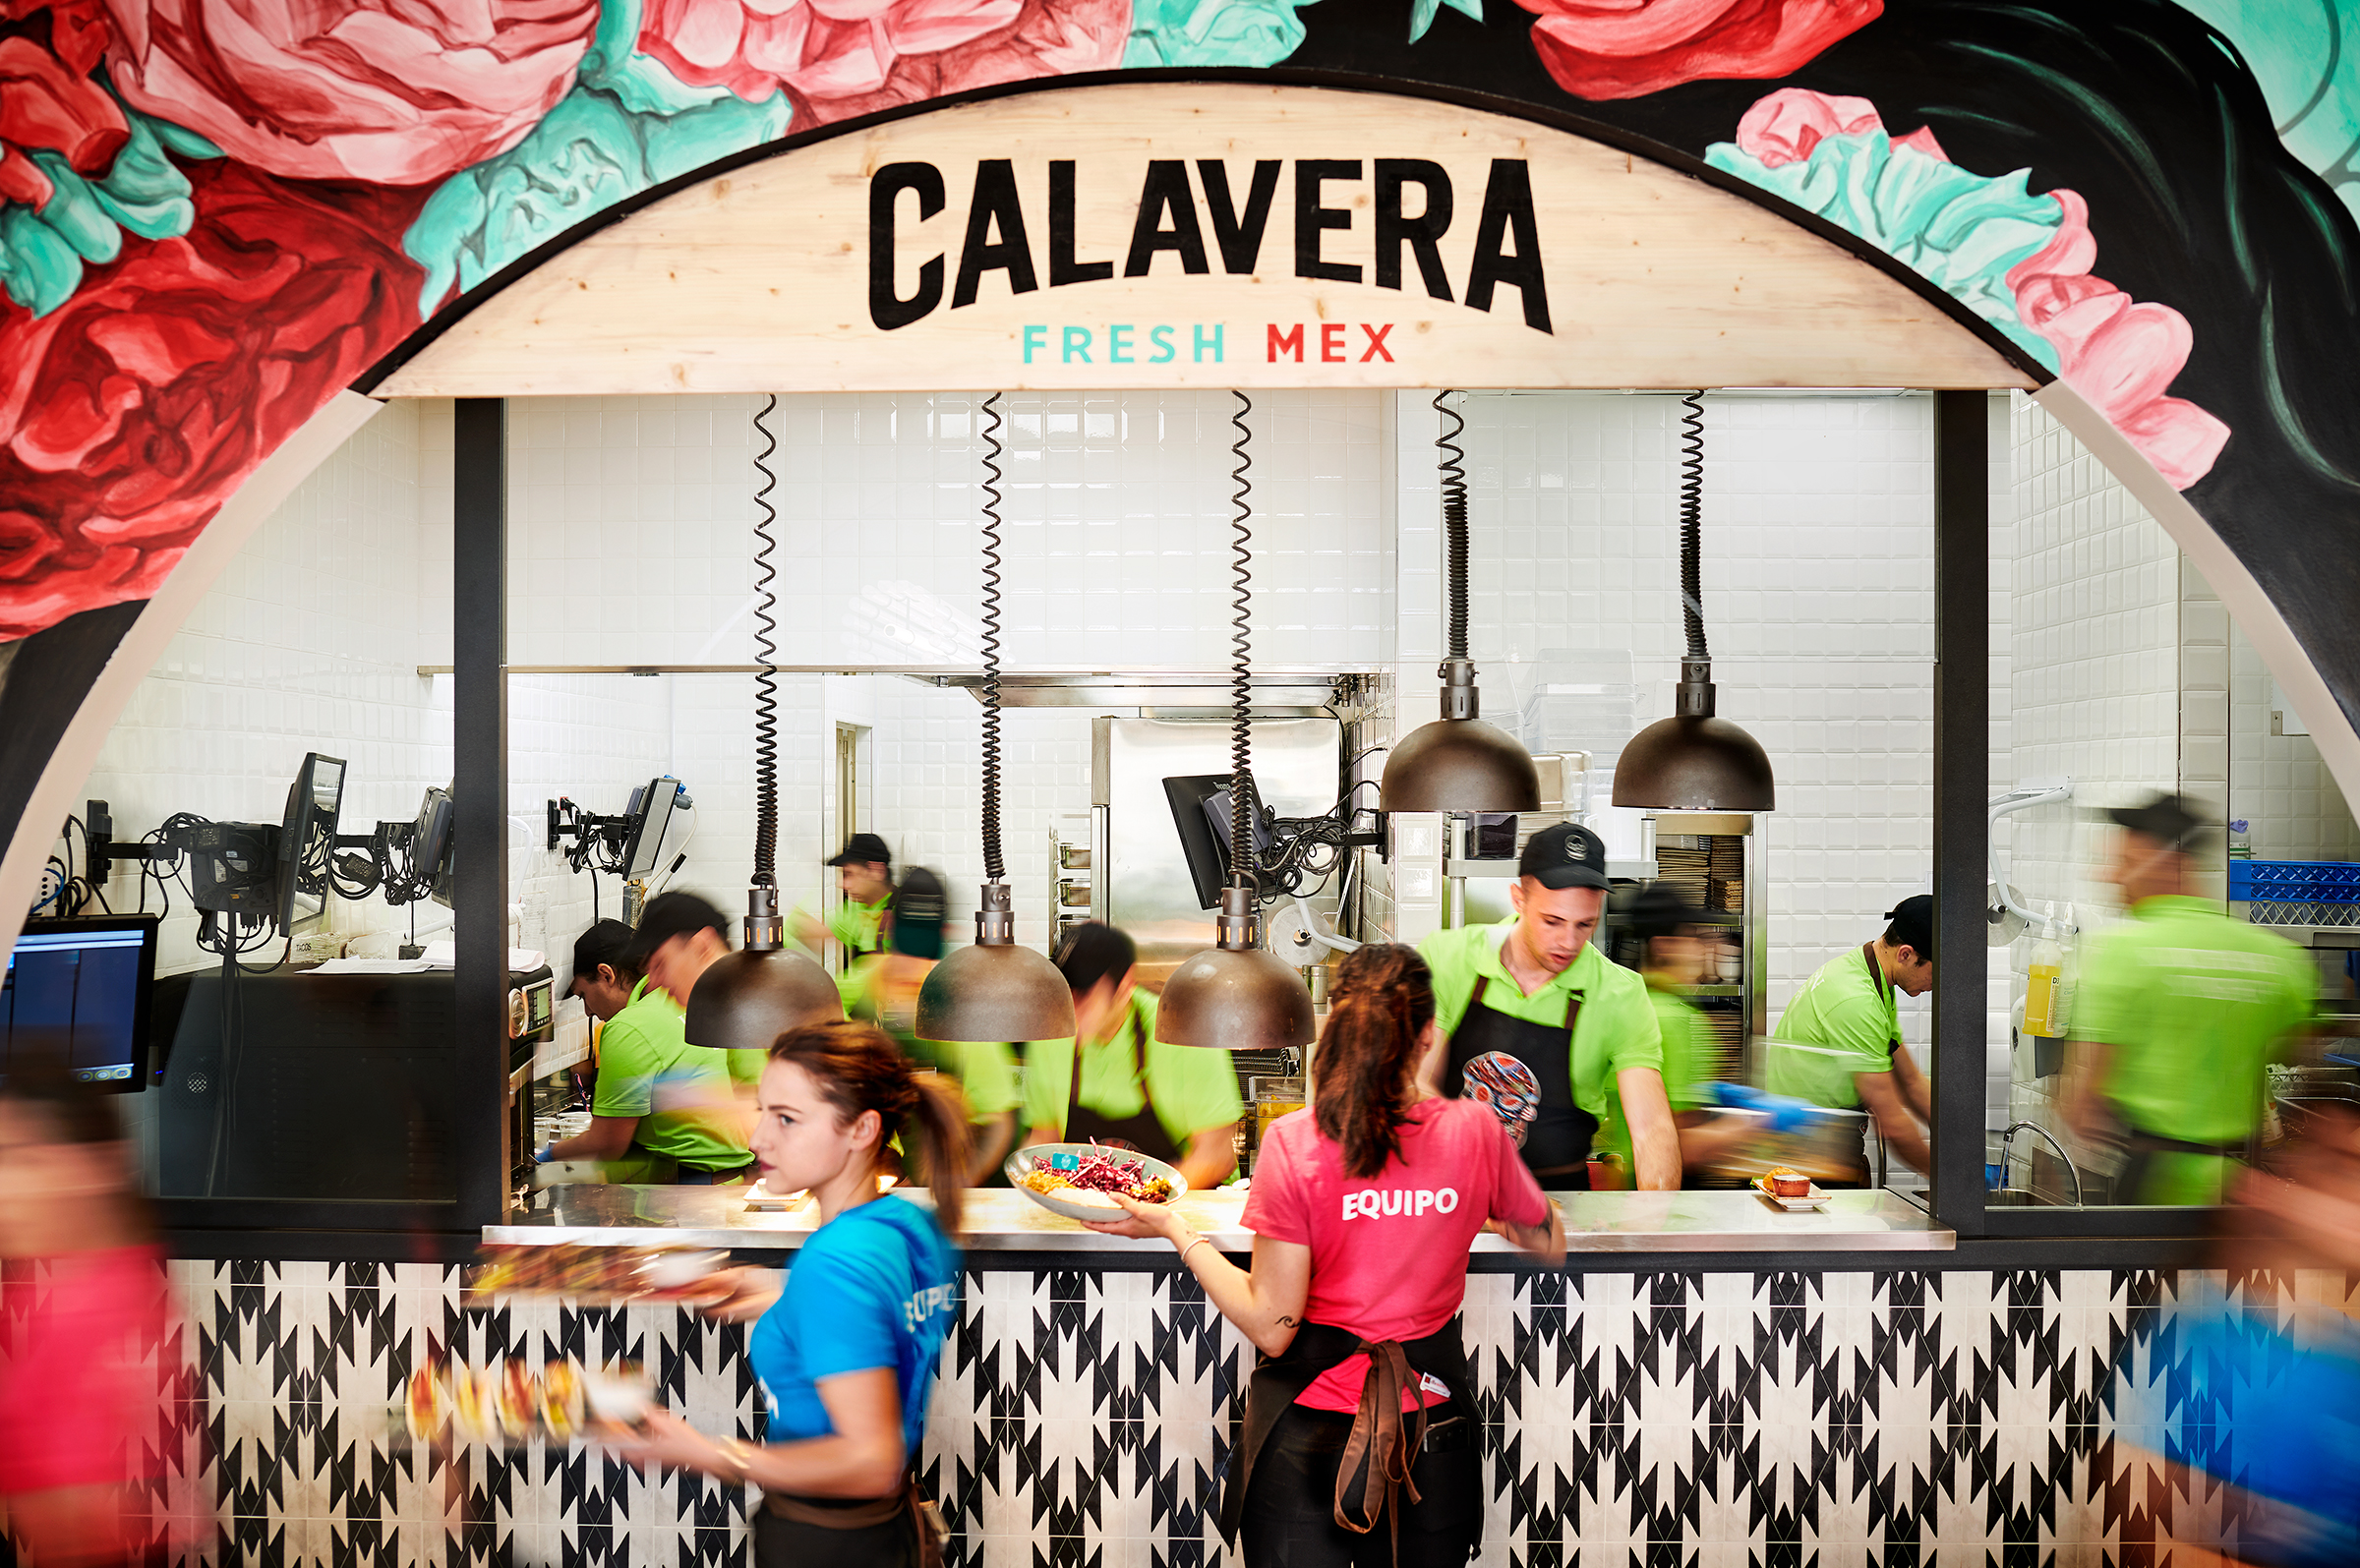 Calavera: Mexican Restaurant Chain in Italy: Chef's Pass